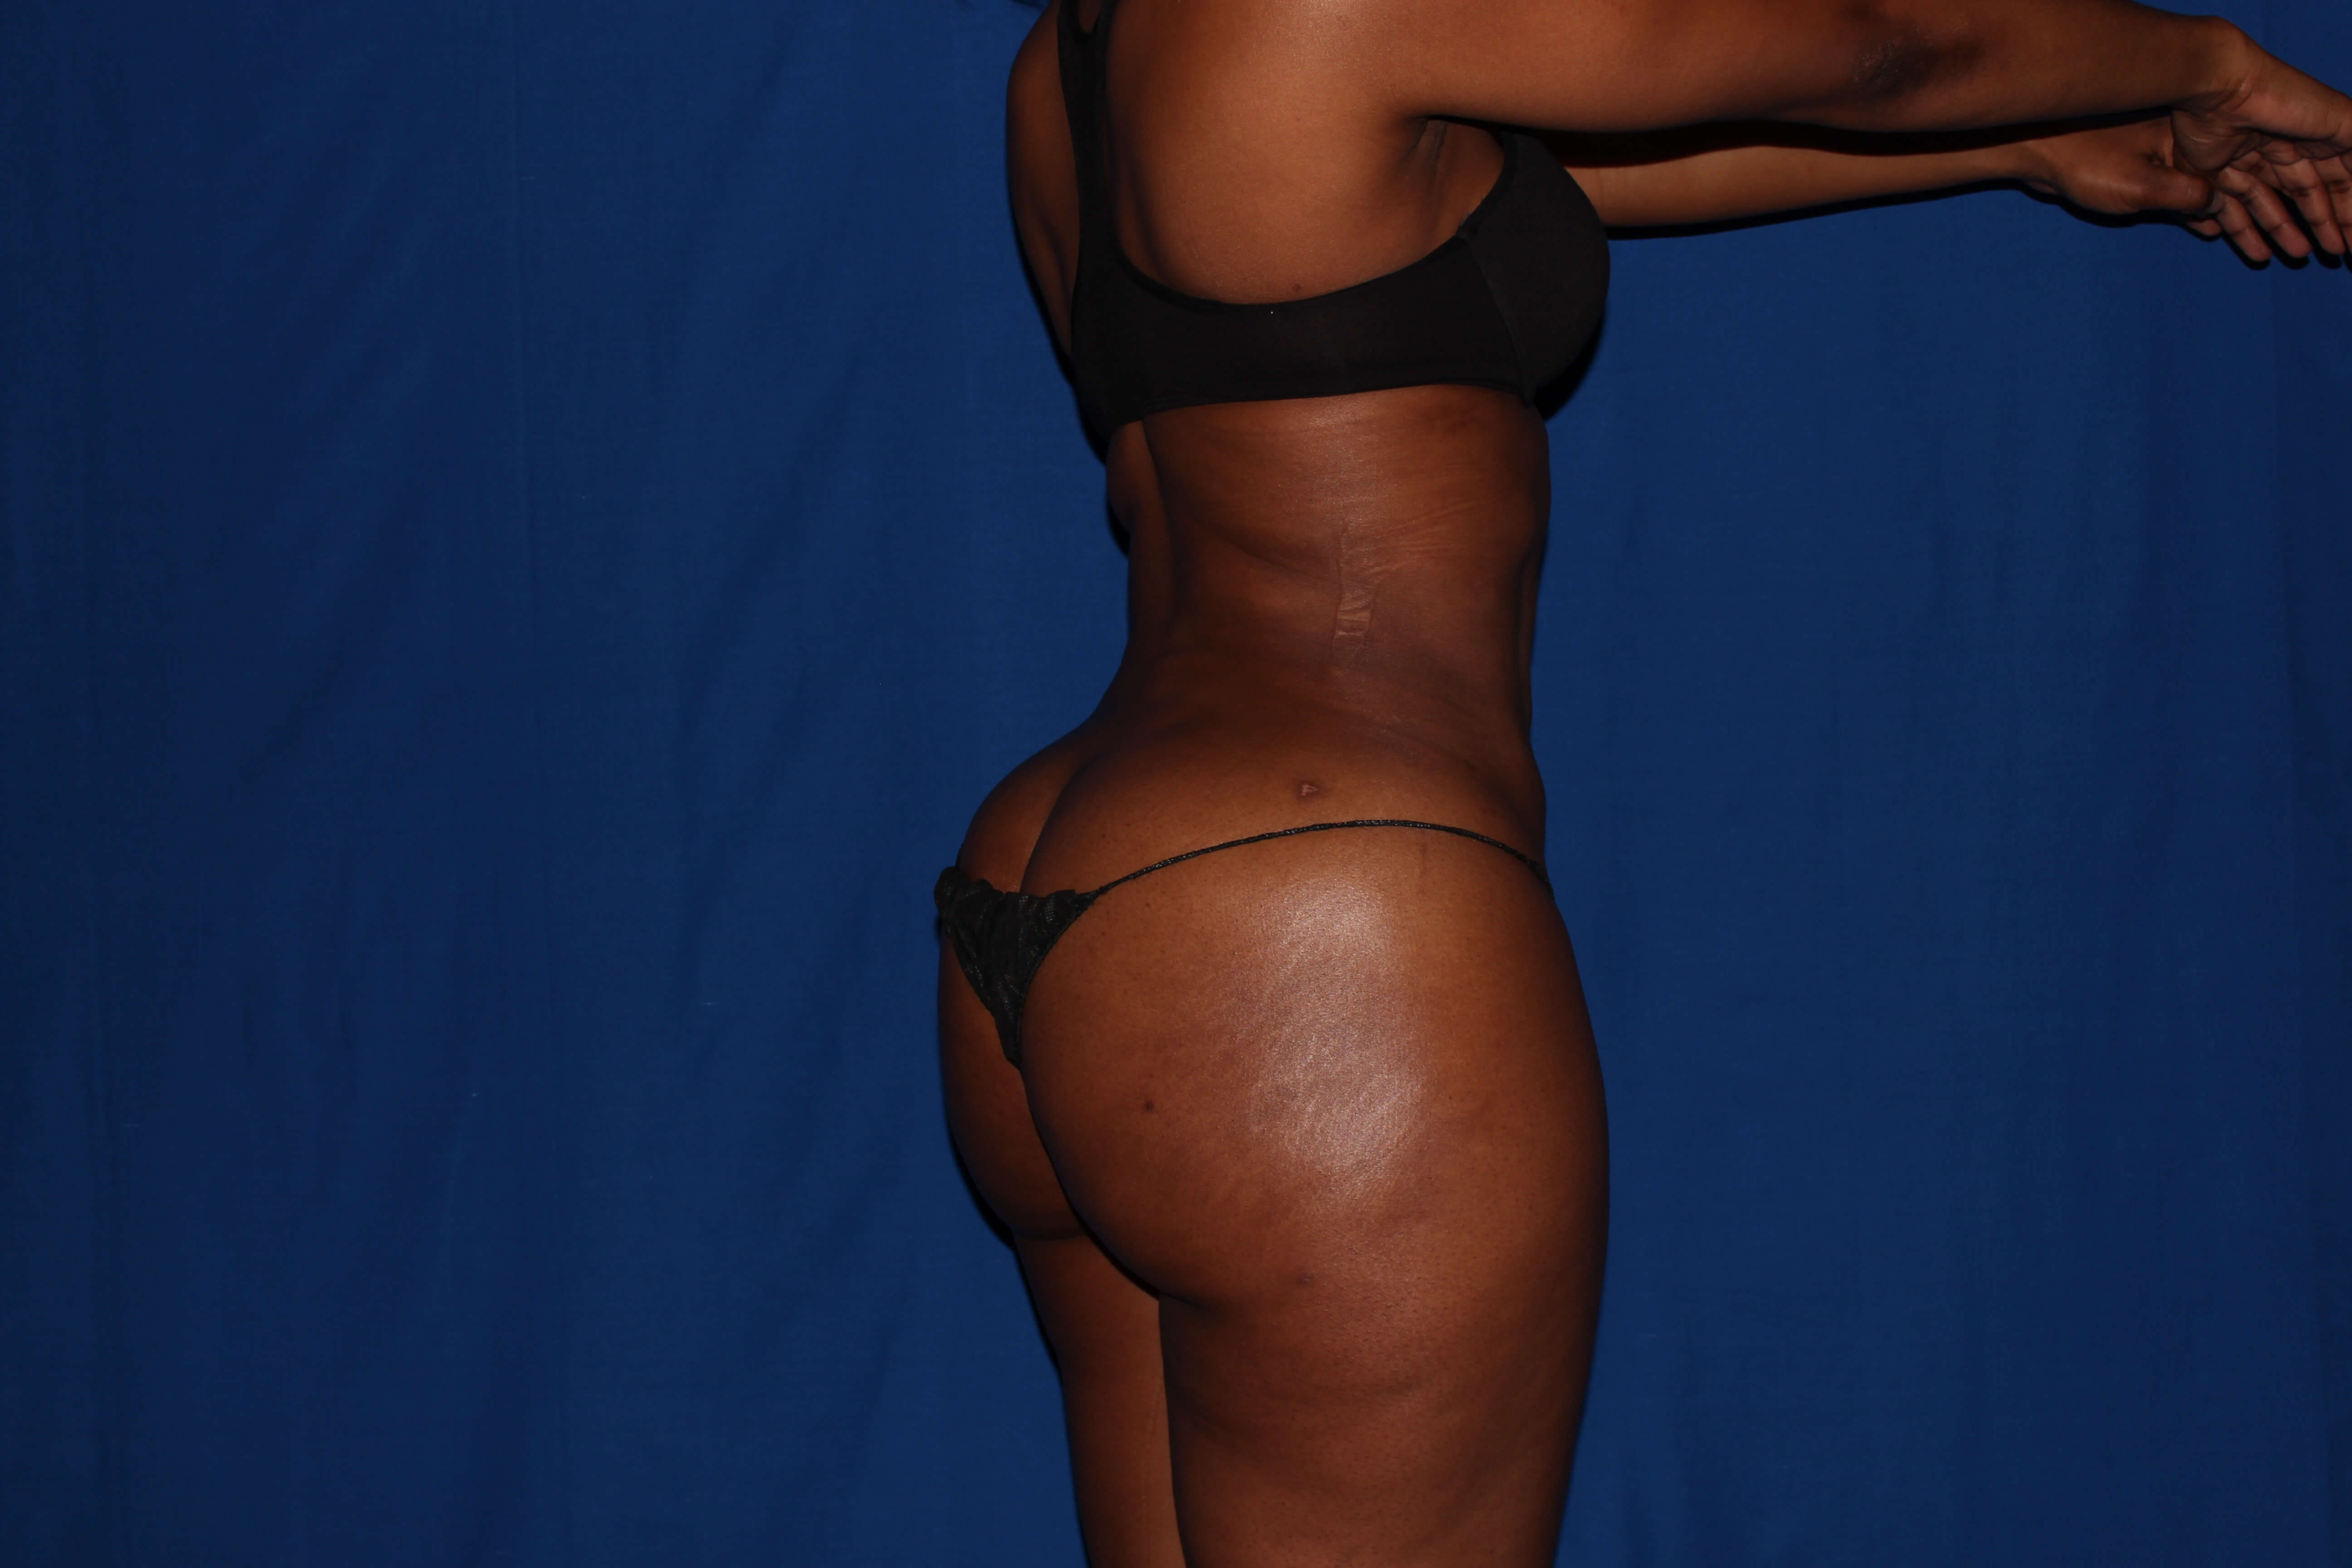 Liposuction with BBL After - Phoenix Area BBL